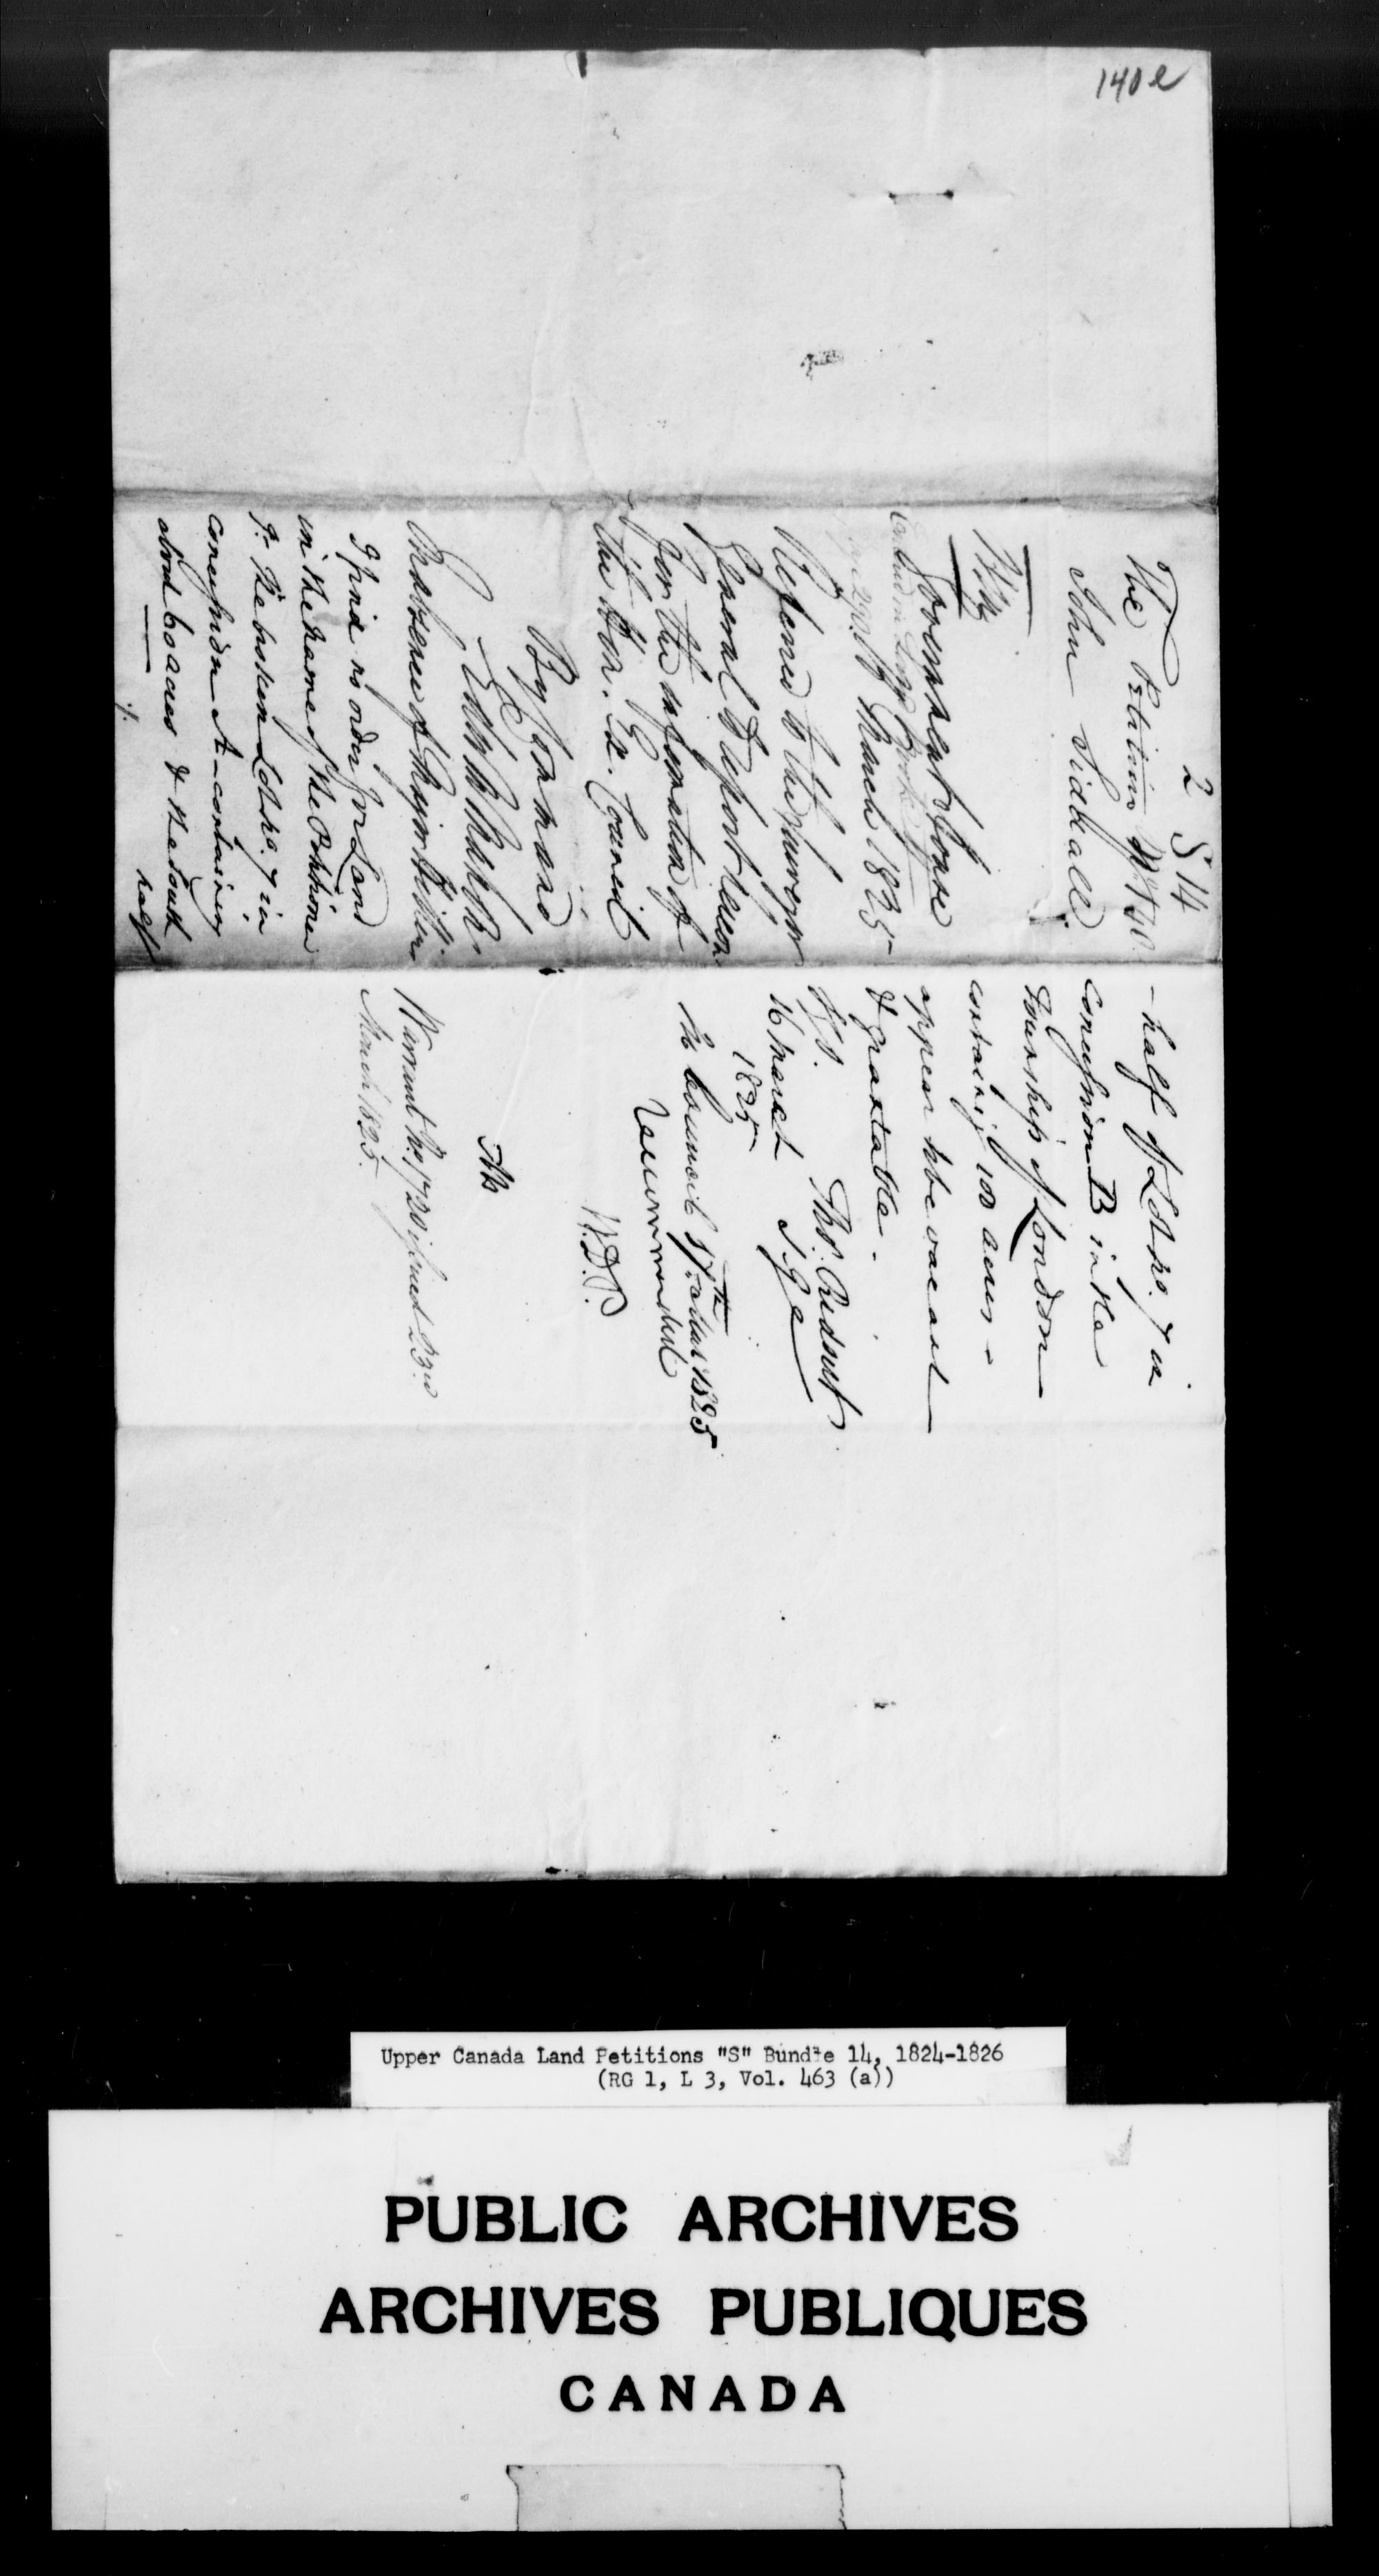 Title: Upper Canada Land Petitions (1763-1865) - Mikan Number: 205131 - Microform: c-2814